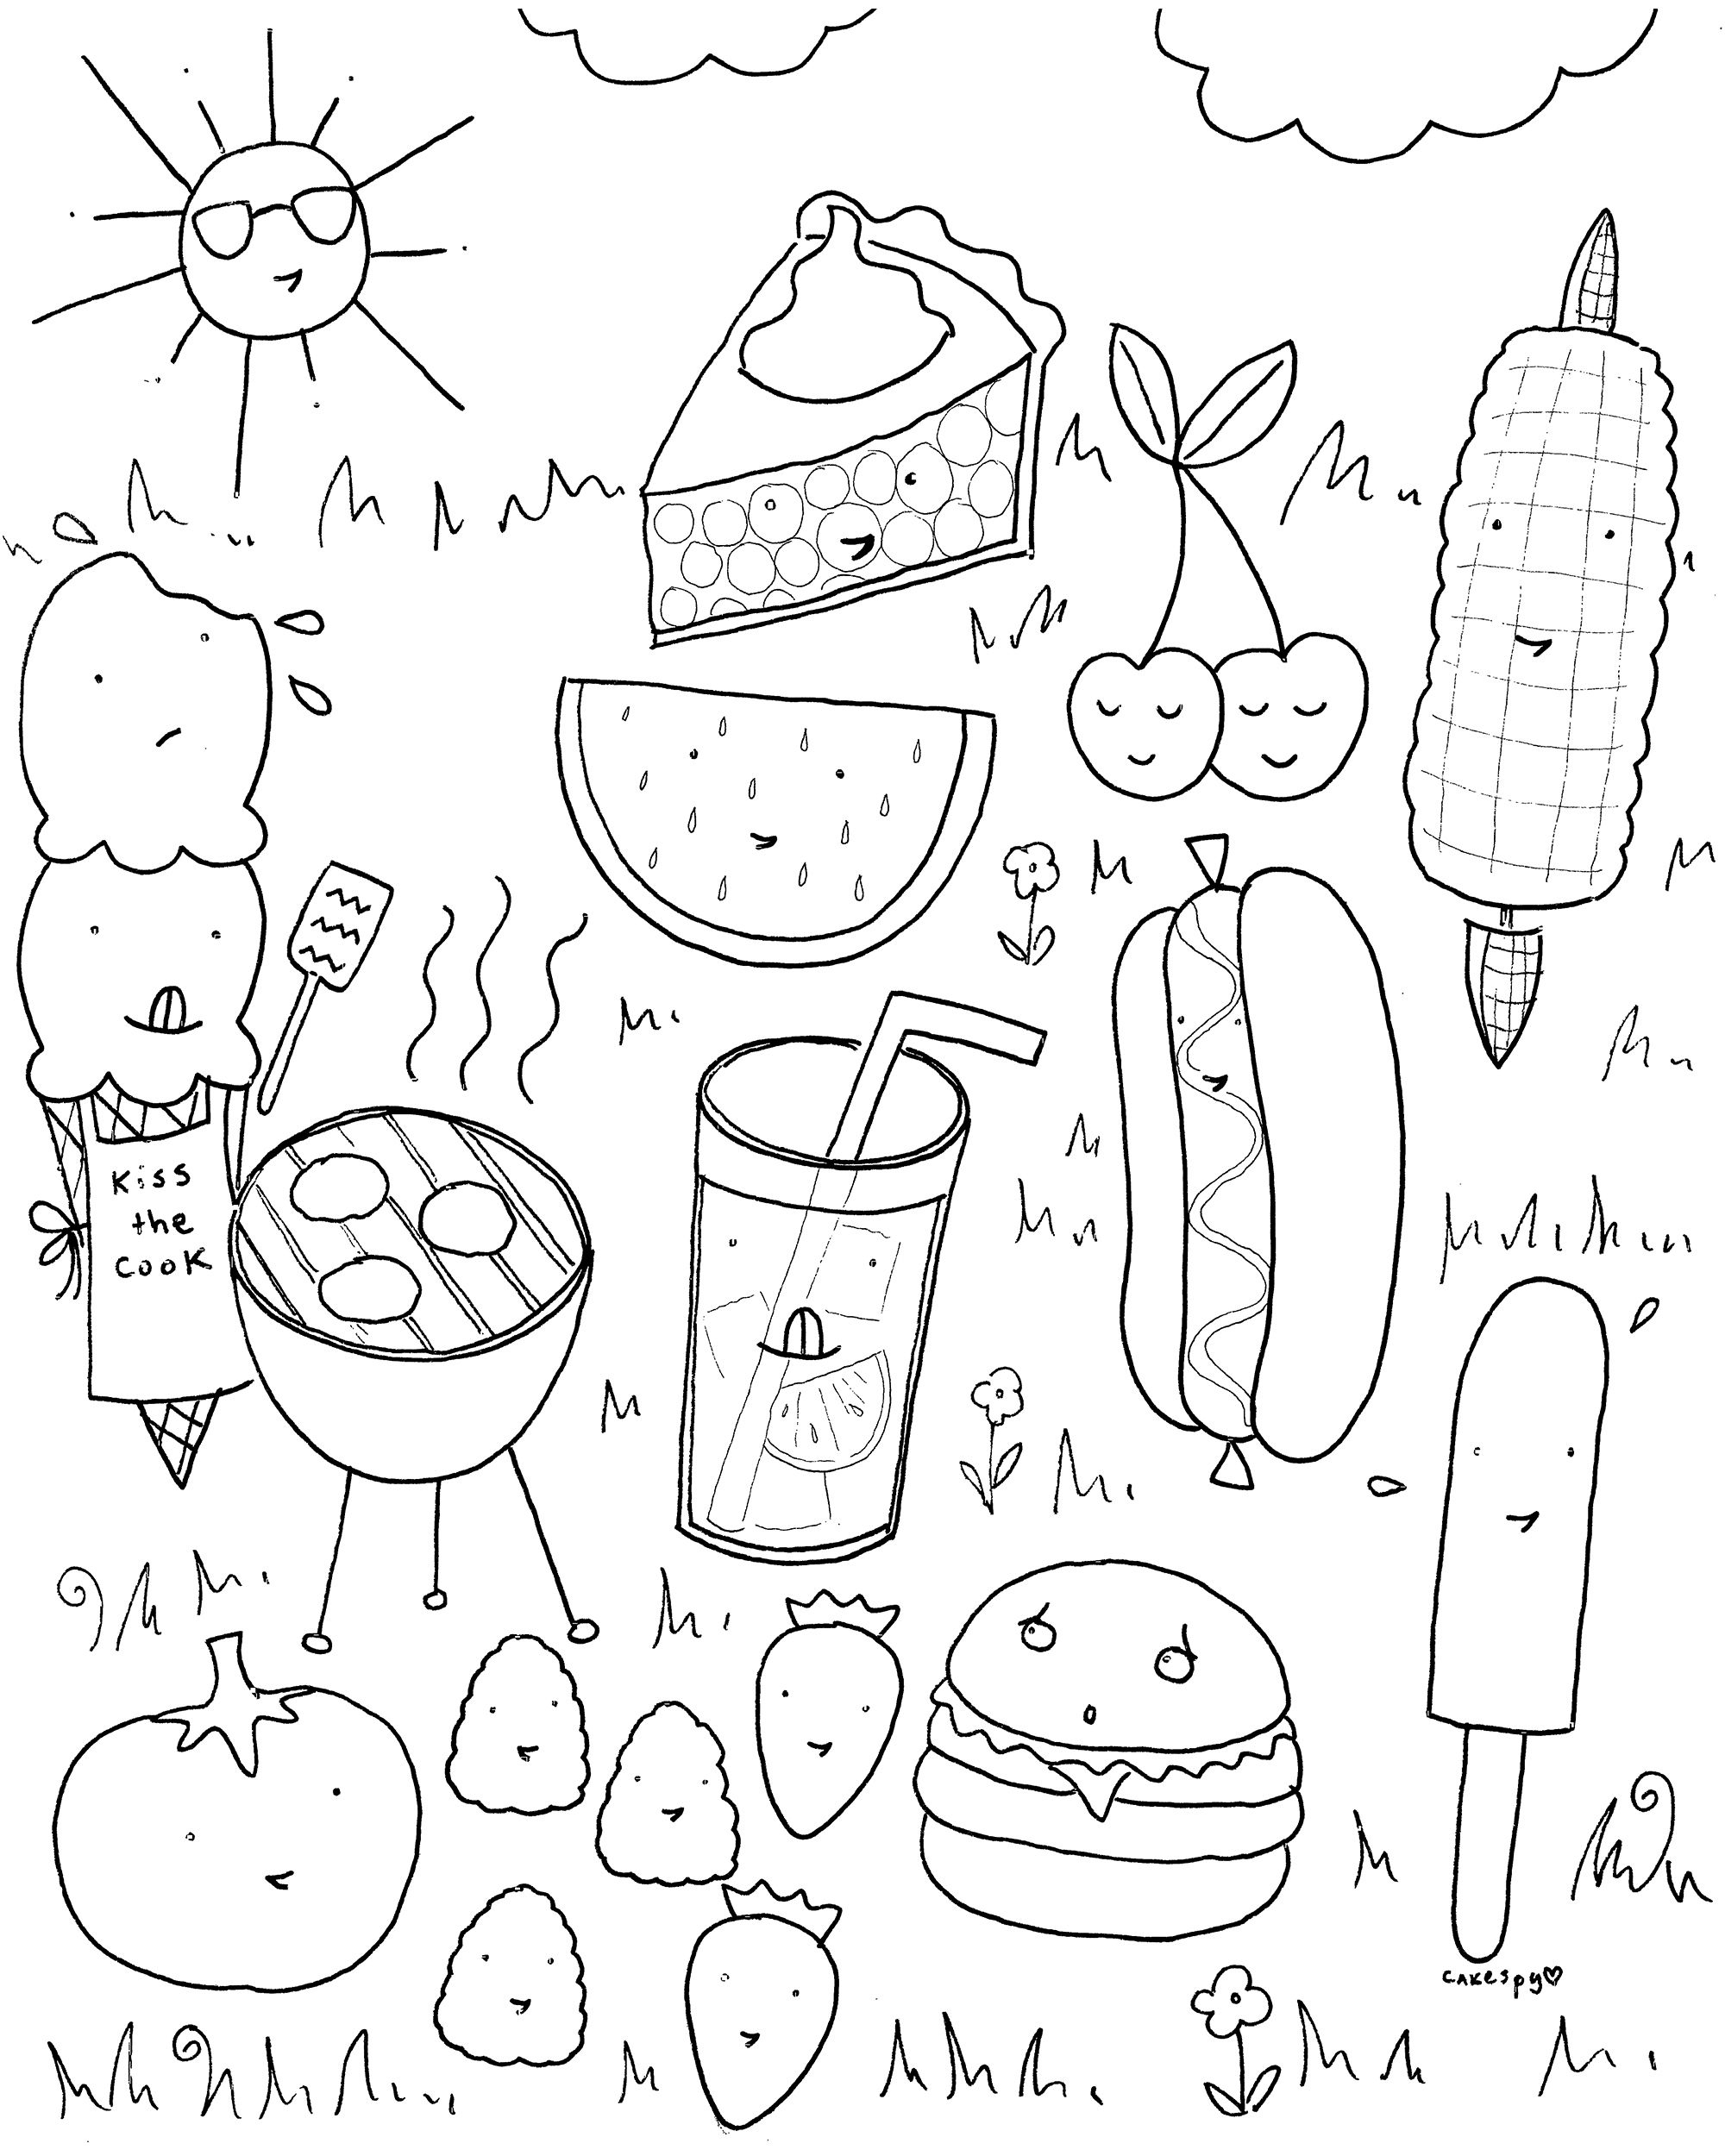 Free Downloadable Summer Fun Coloring Book Pages | Ideen Für Kinder - Summer Coloring Sheets Free Printable